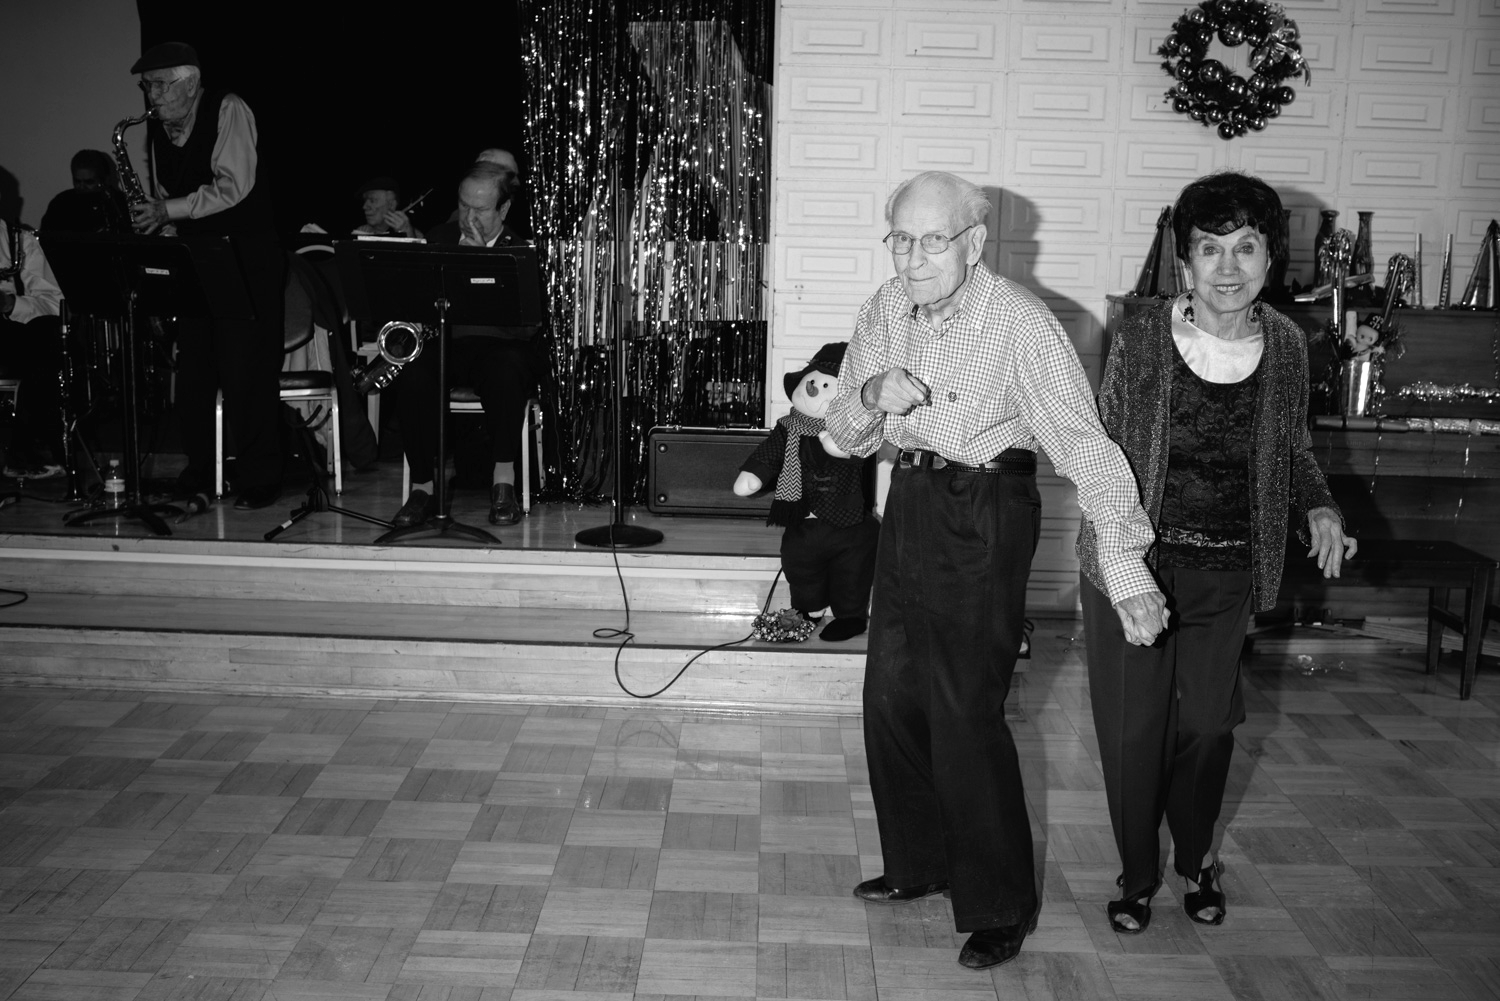 The Salt Lake City Tenth Street Senior Center holds biweekly senior dances featuring live jazz bands also comprised of seniors. My dad plays drums in one of the bands and I often go check out the scene. All of this happens before noon.  Salt Lake City, Utah.